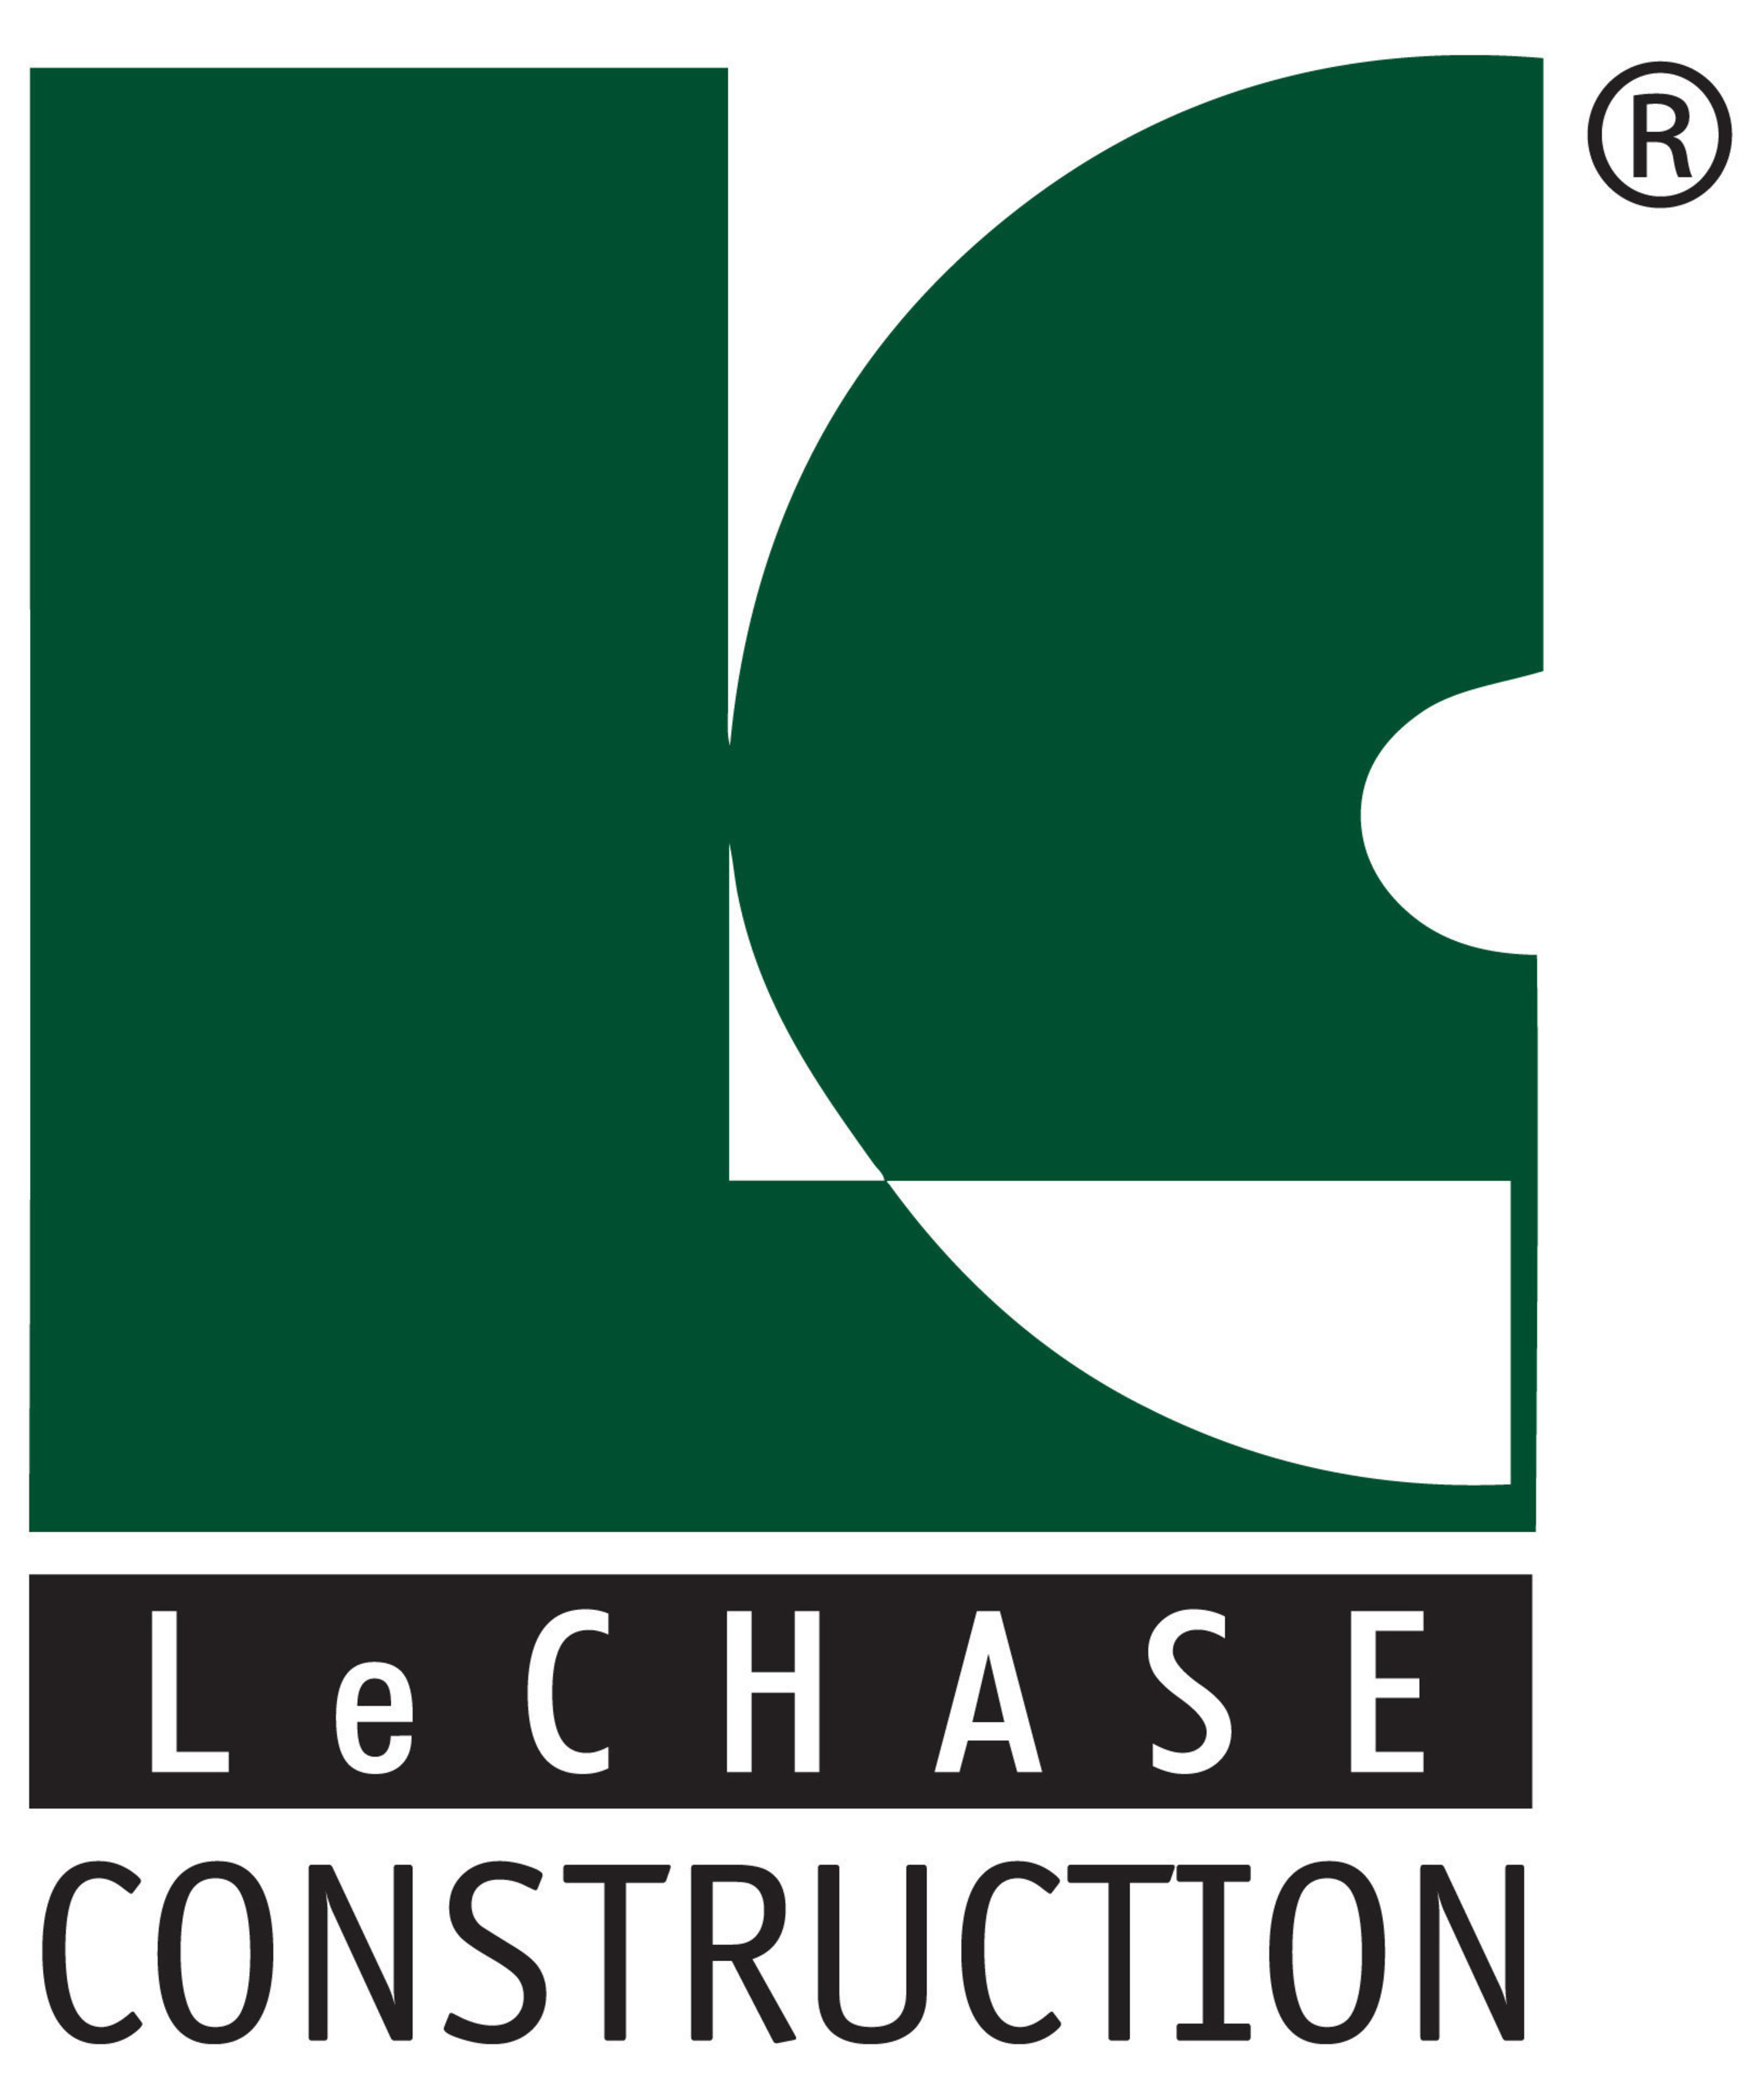 Lechase Construction Services Llc Announces An Agreement To Purchase Lendlease Offices In Upstate New York And Raleigh Durham